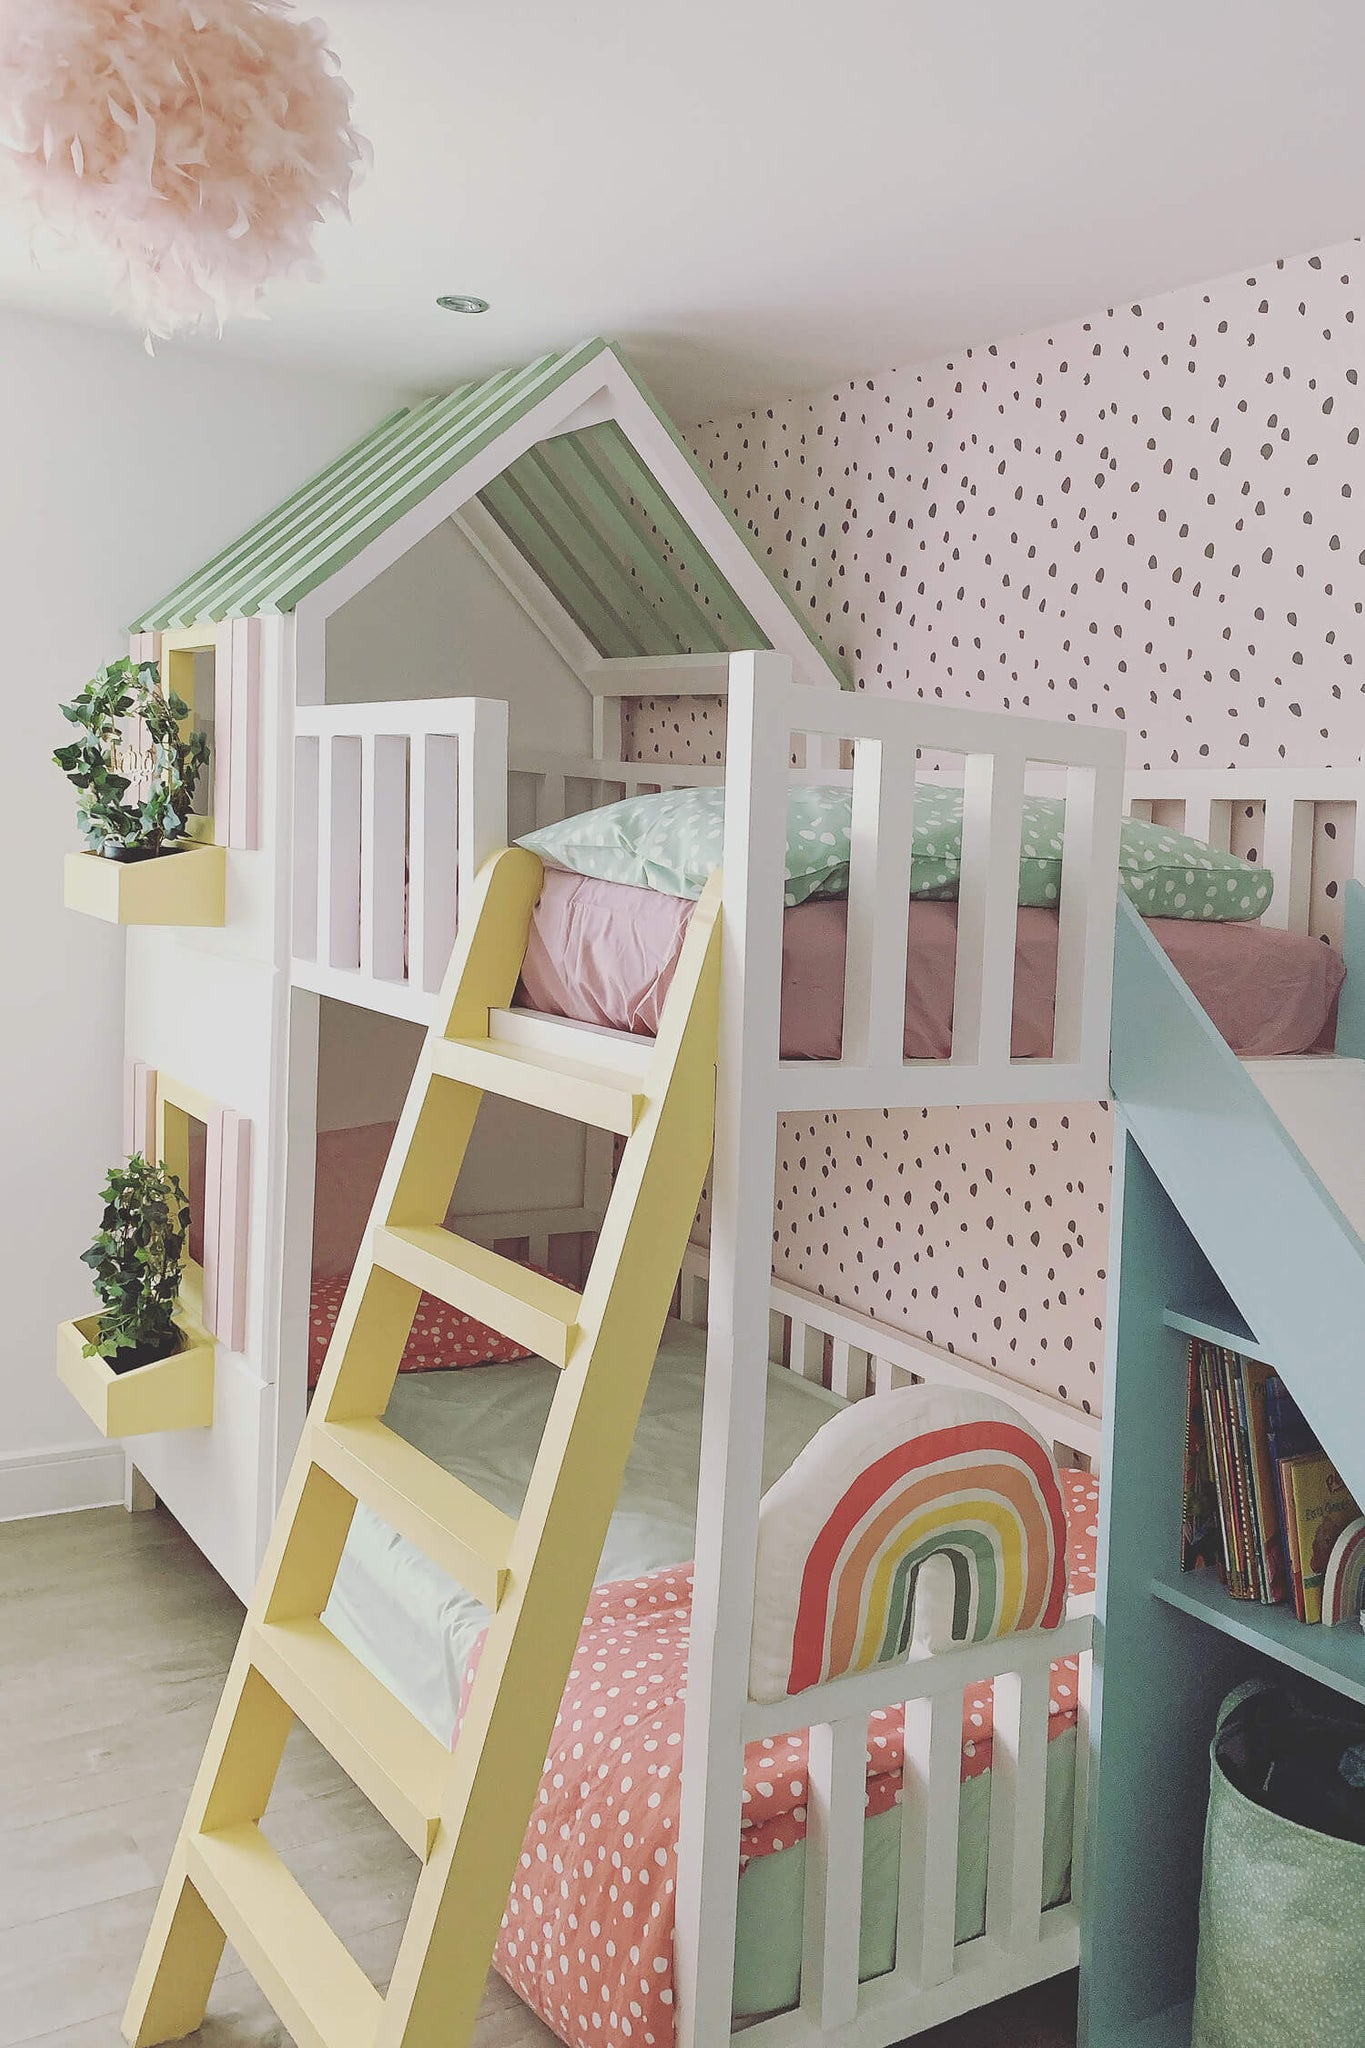 Modern girl's bedroom interior with white house bed and pastel pink removable wallpaper with rainbow theme